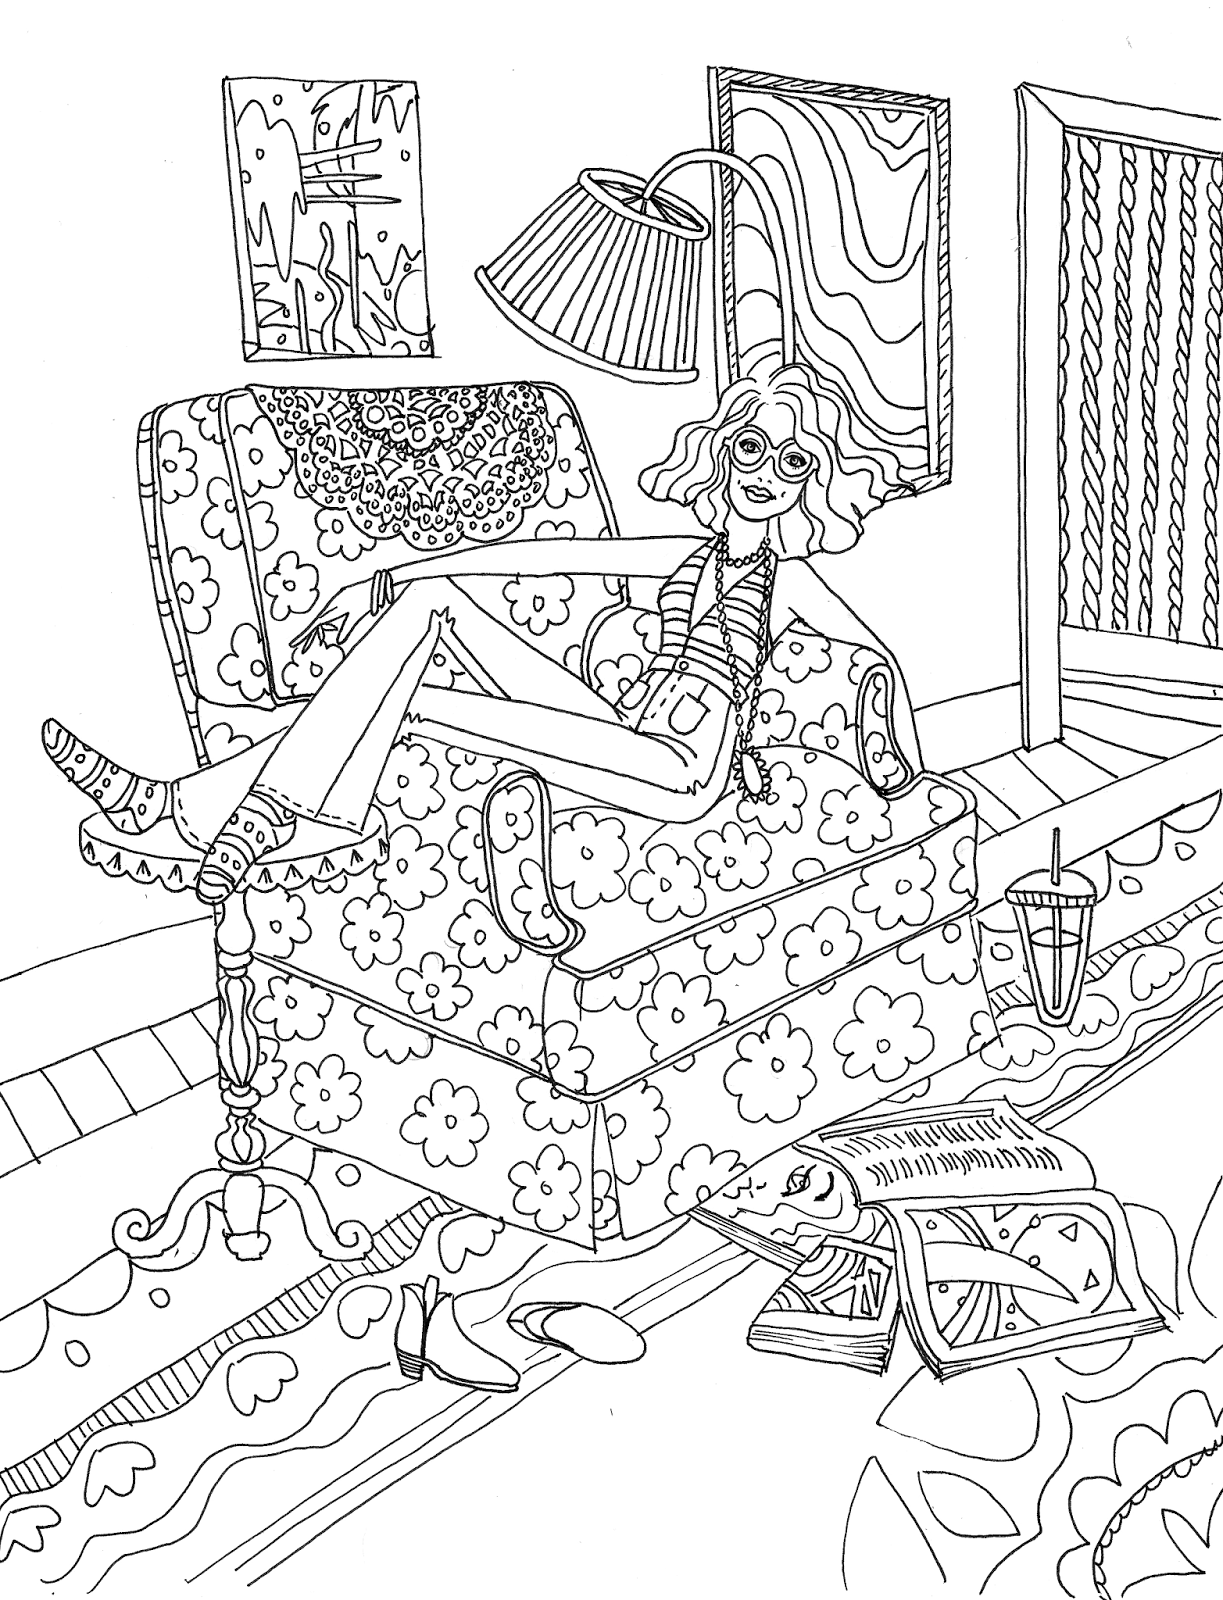 Coloring page inspired by laura callaghan